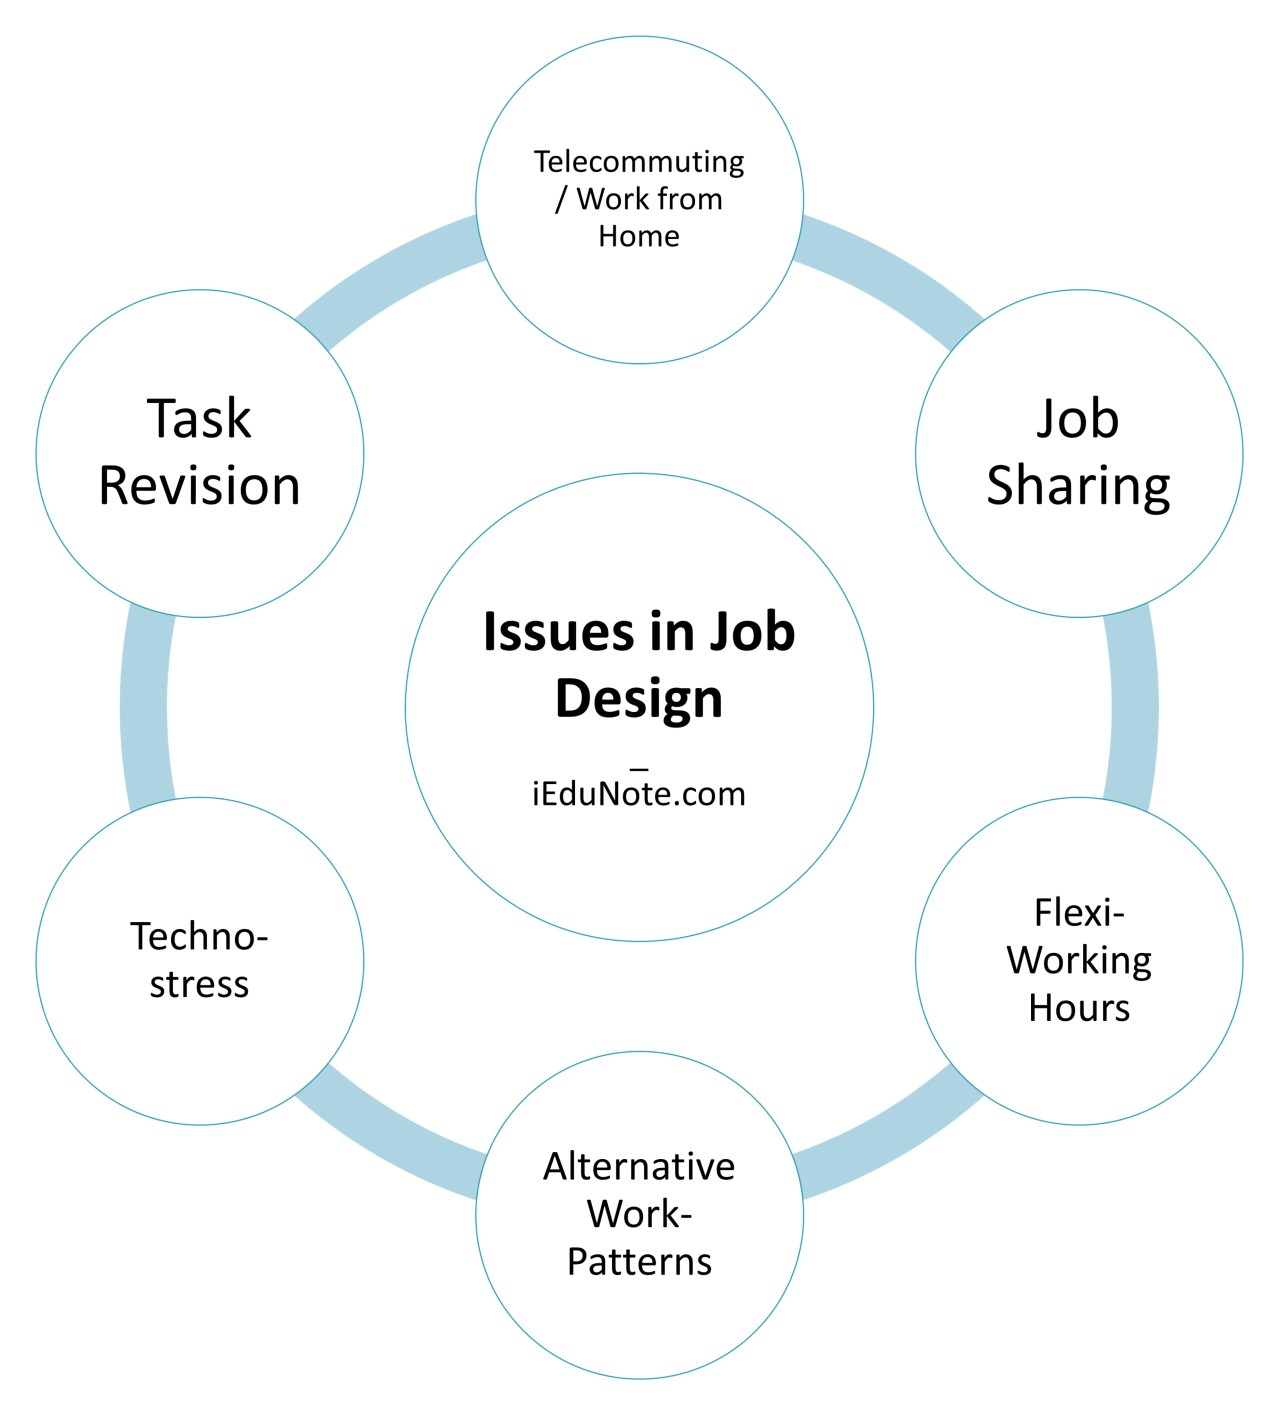 Issues in Job Design